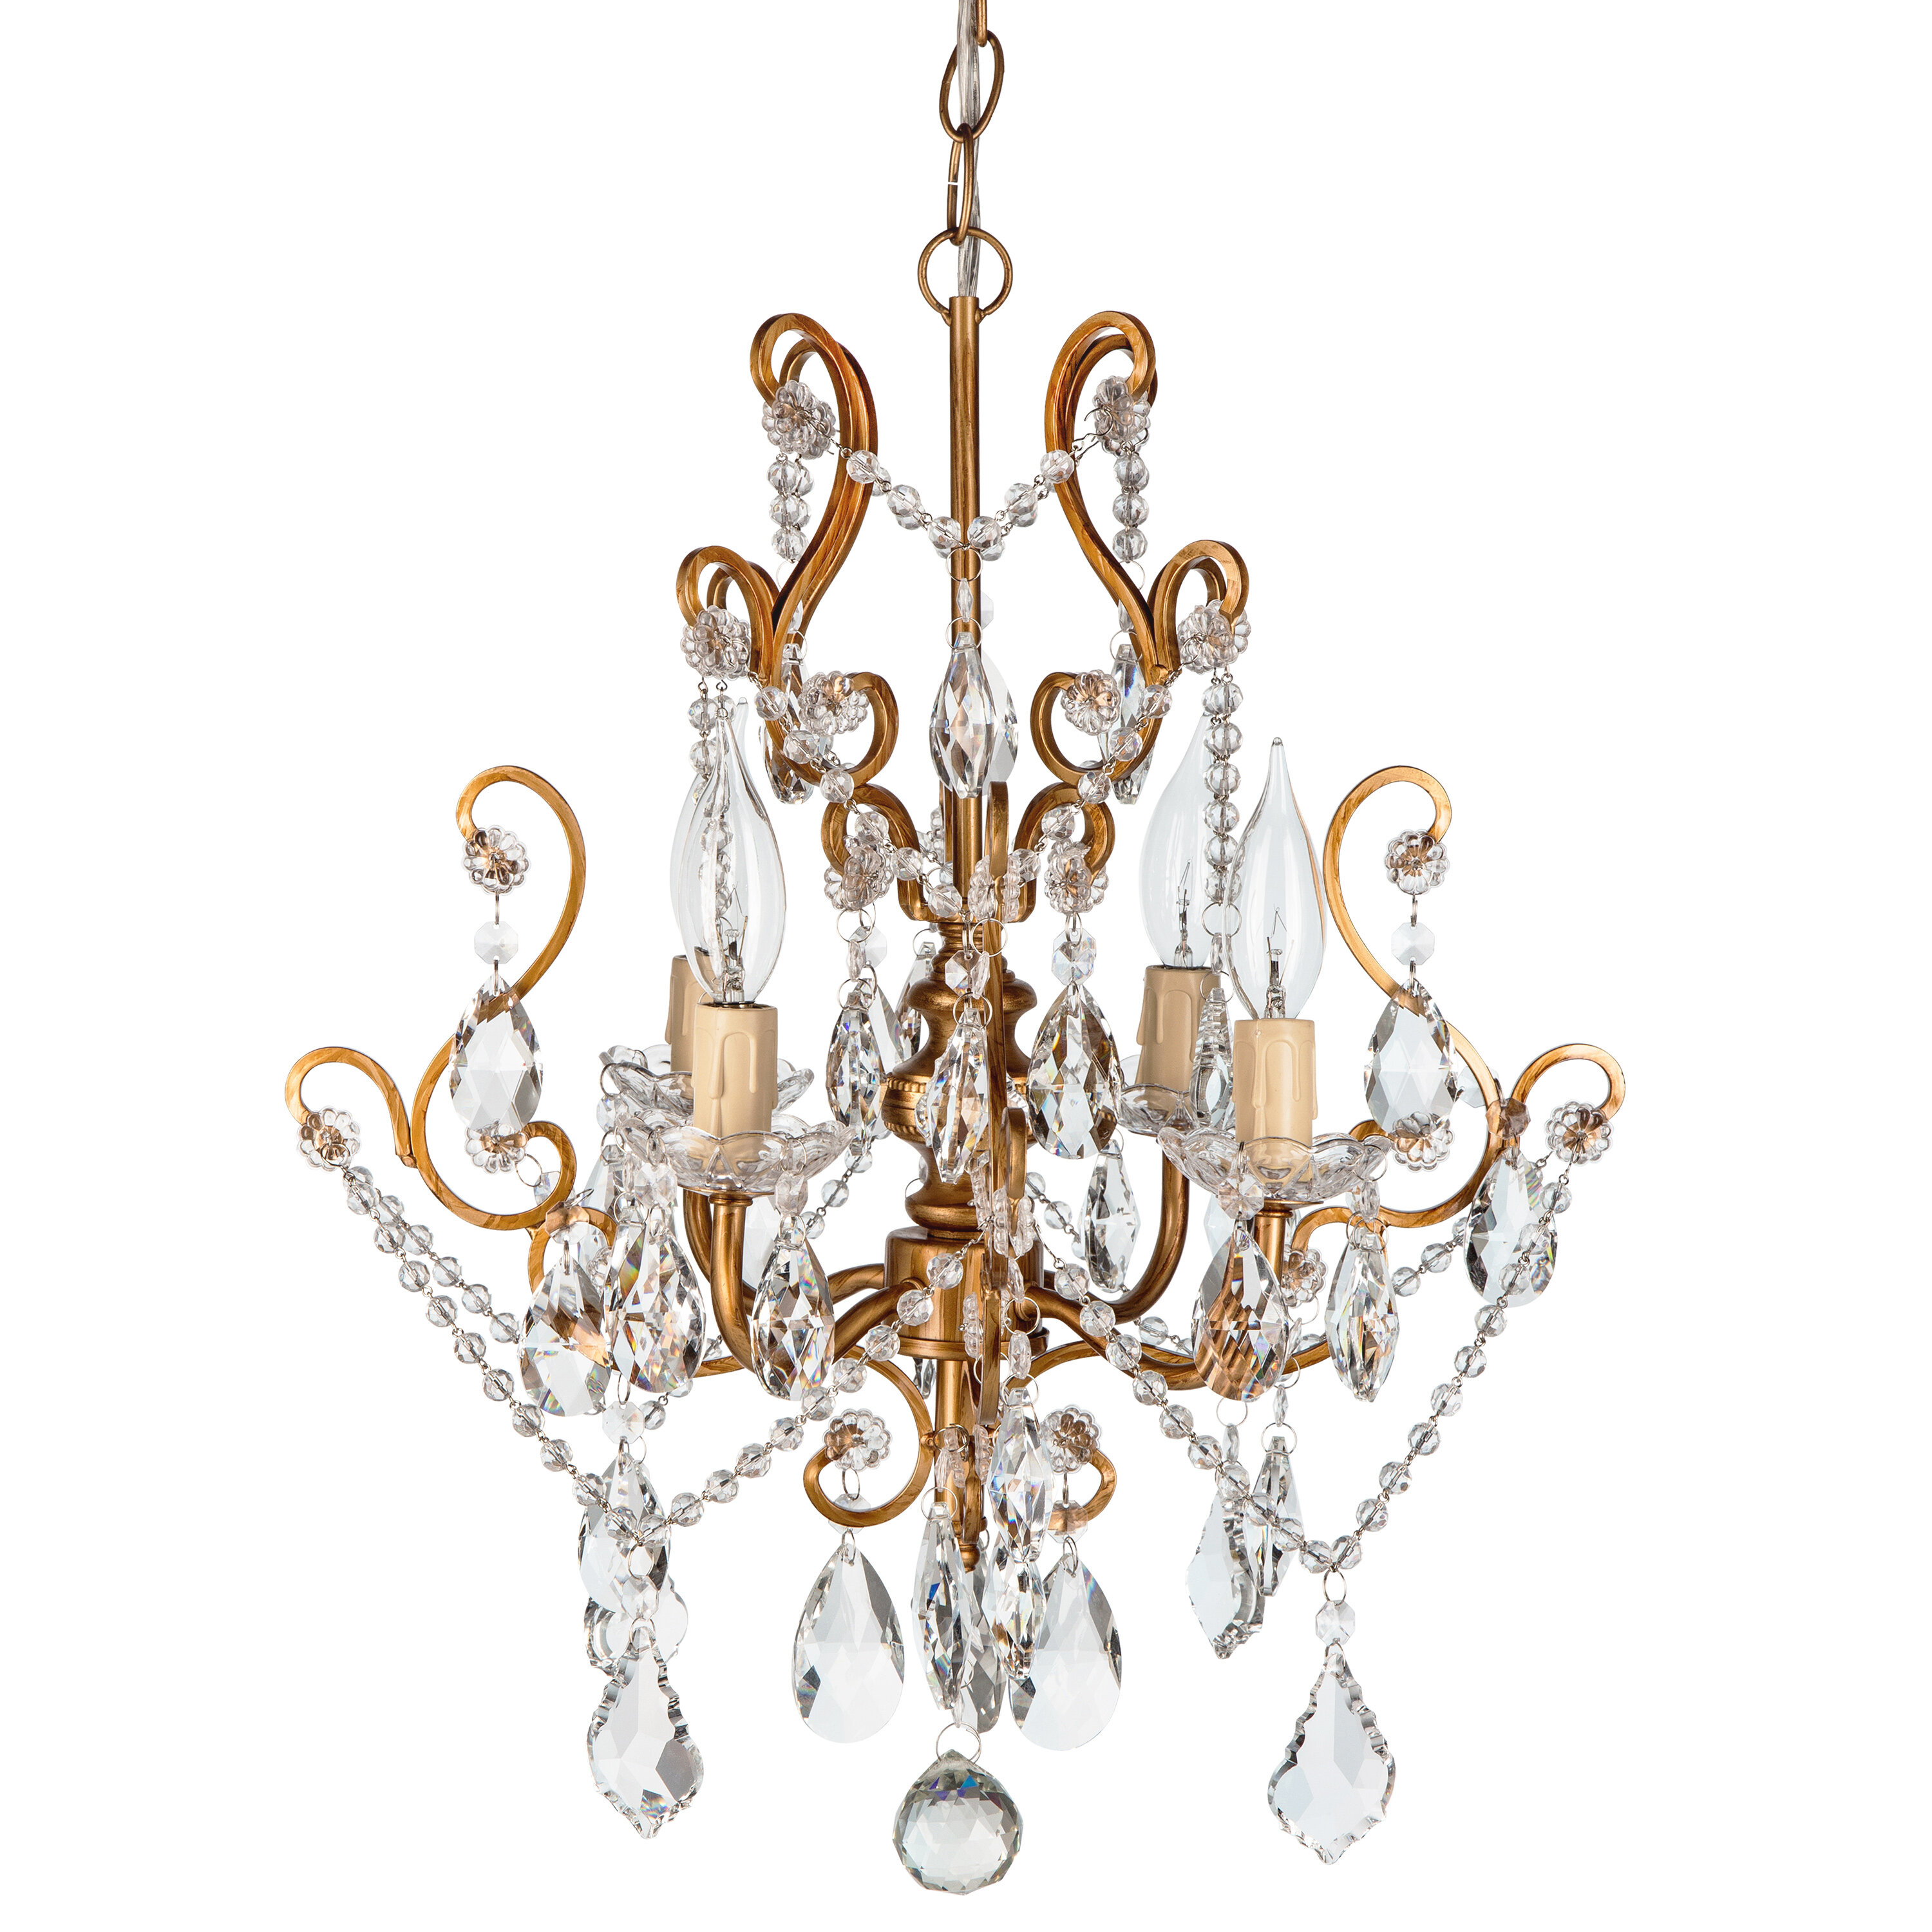 light dining me dinner to table of tadpoles lighting over italian kitchen glass farmhouse chandelier height room size hanging hang foodjoy page chandeliers full